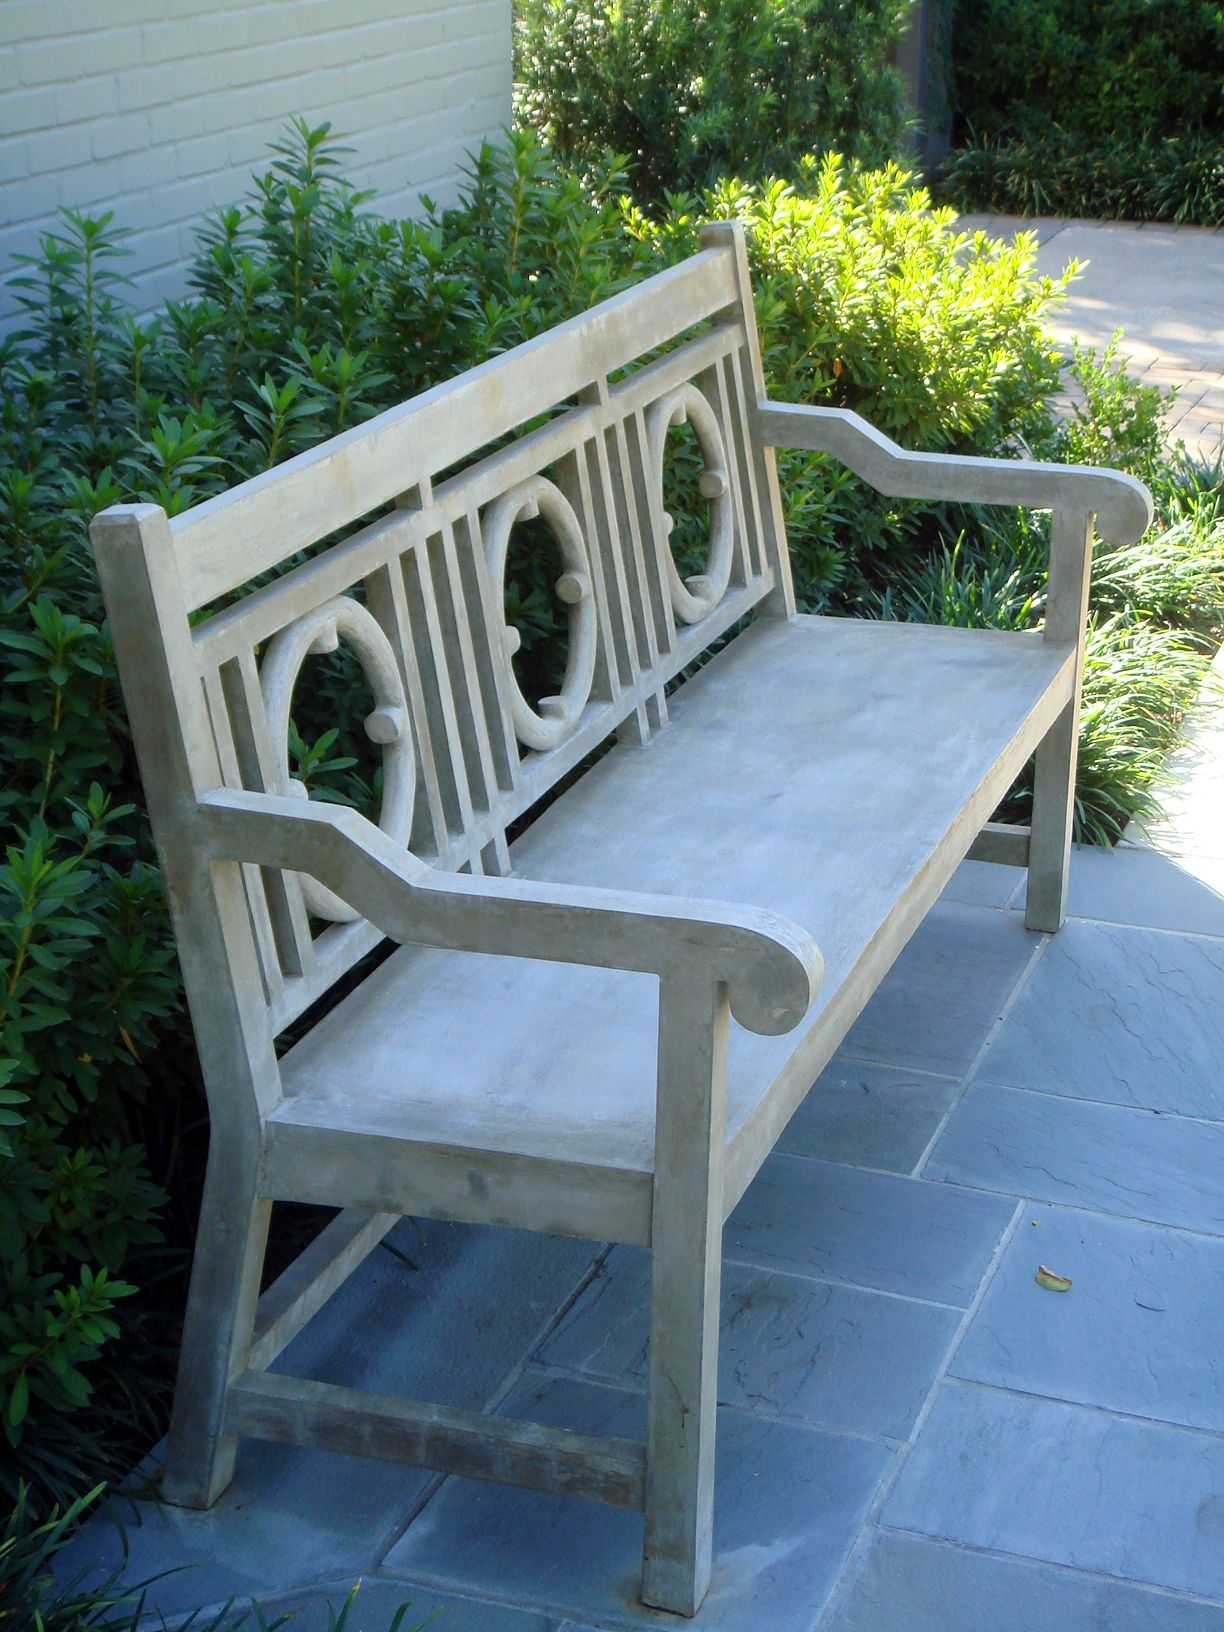 Faux bois houston texas bench furniture garden furniture outdoor furniture garden benches